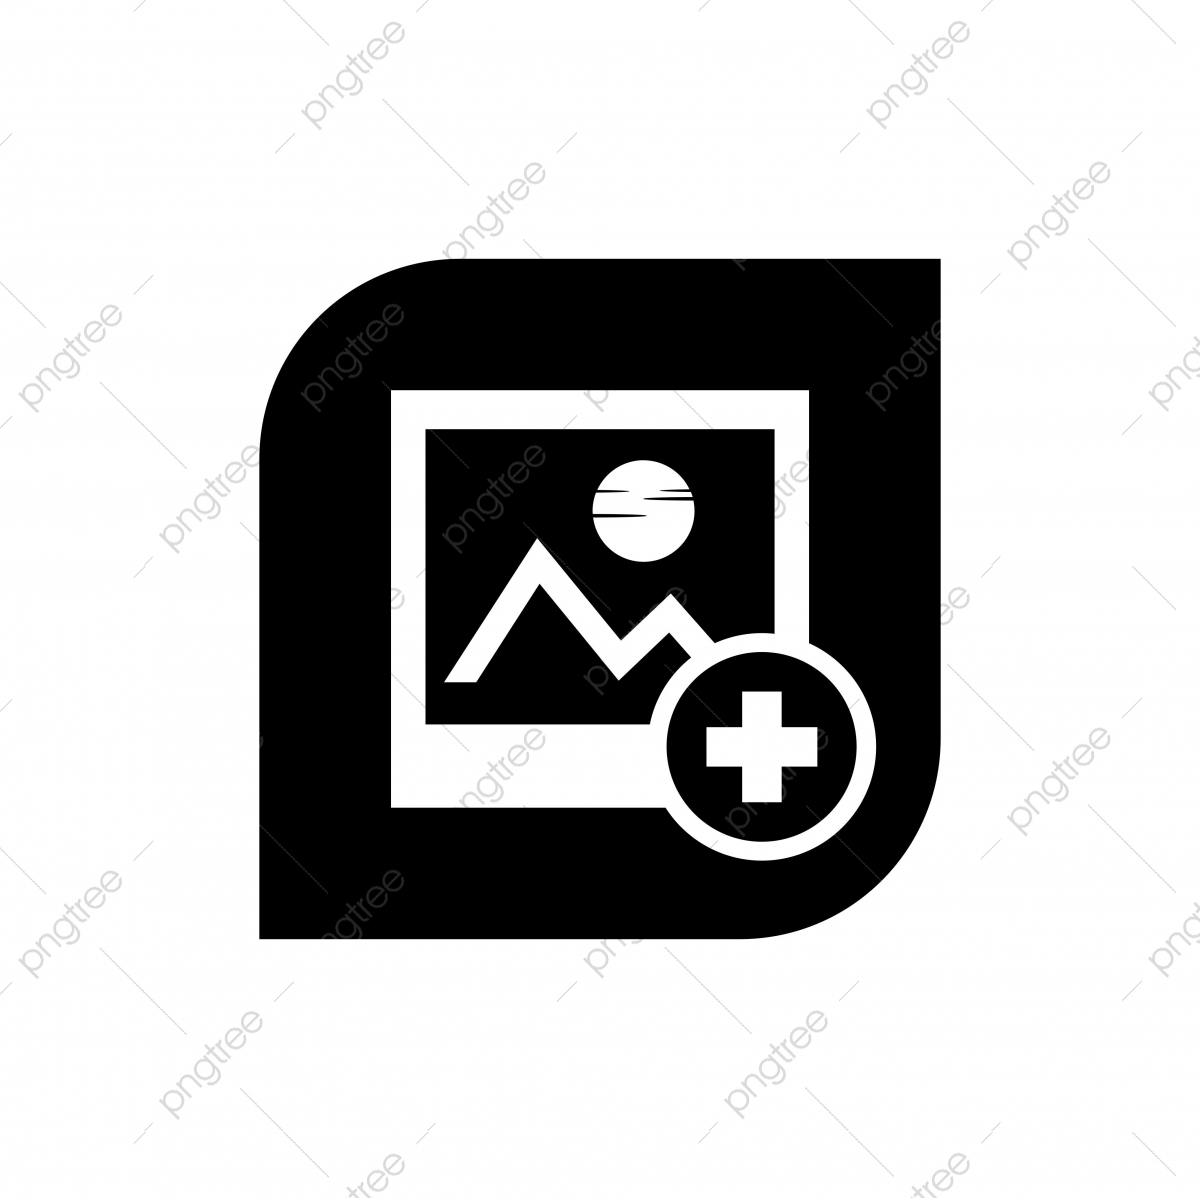 Gallery Flat Icon, Blank, Blue, Border PNG and Vector with